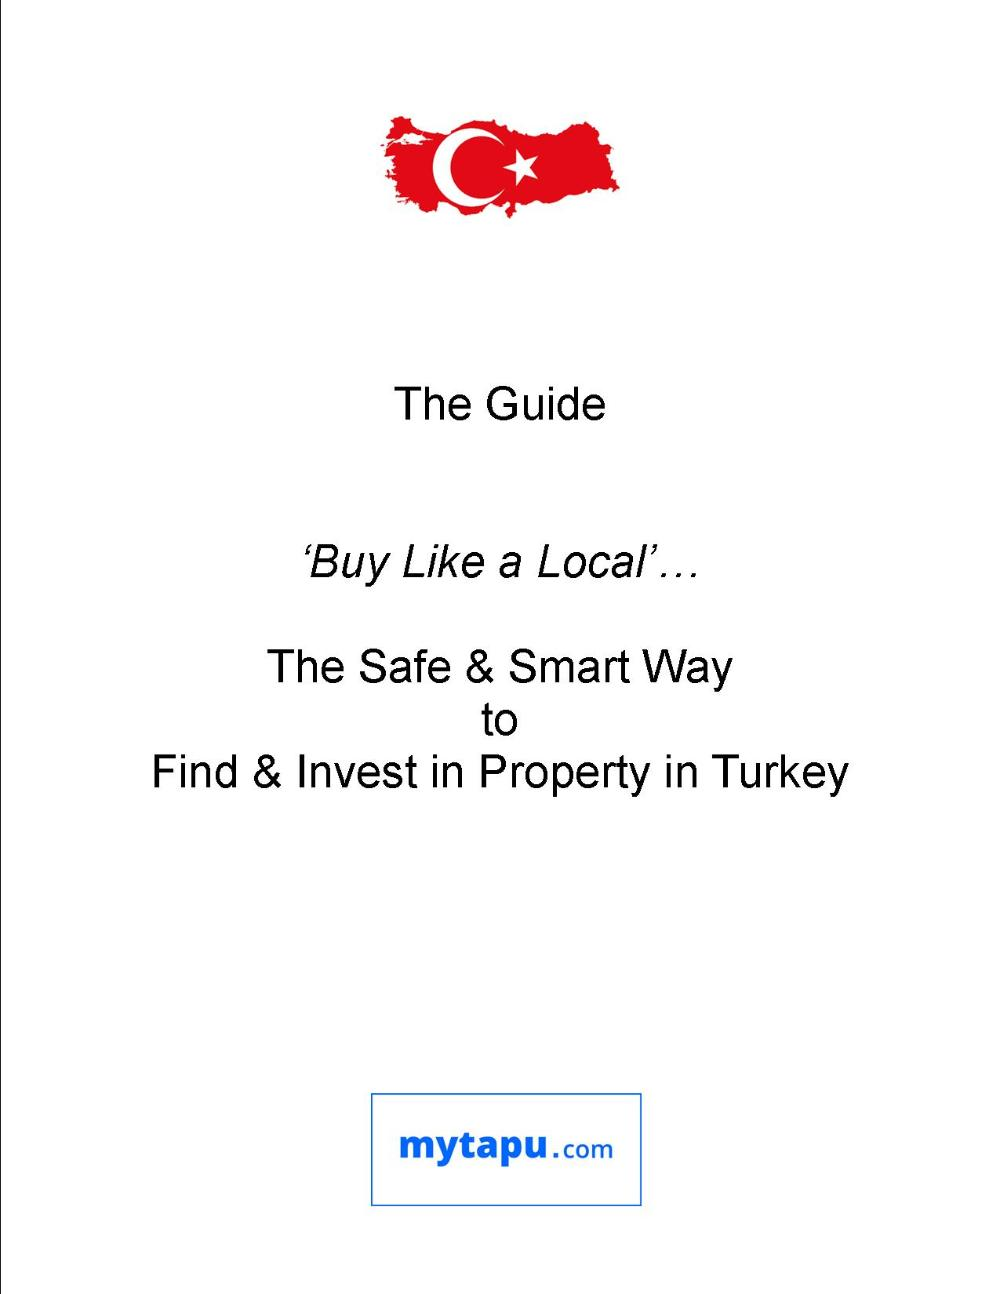 Get the Guide: How to Buy Like a Local,,, How to Find and Invest in Property Real Estate in Istanbul Turkey